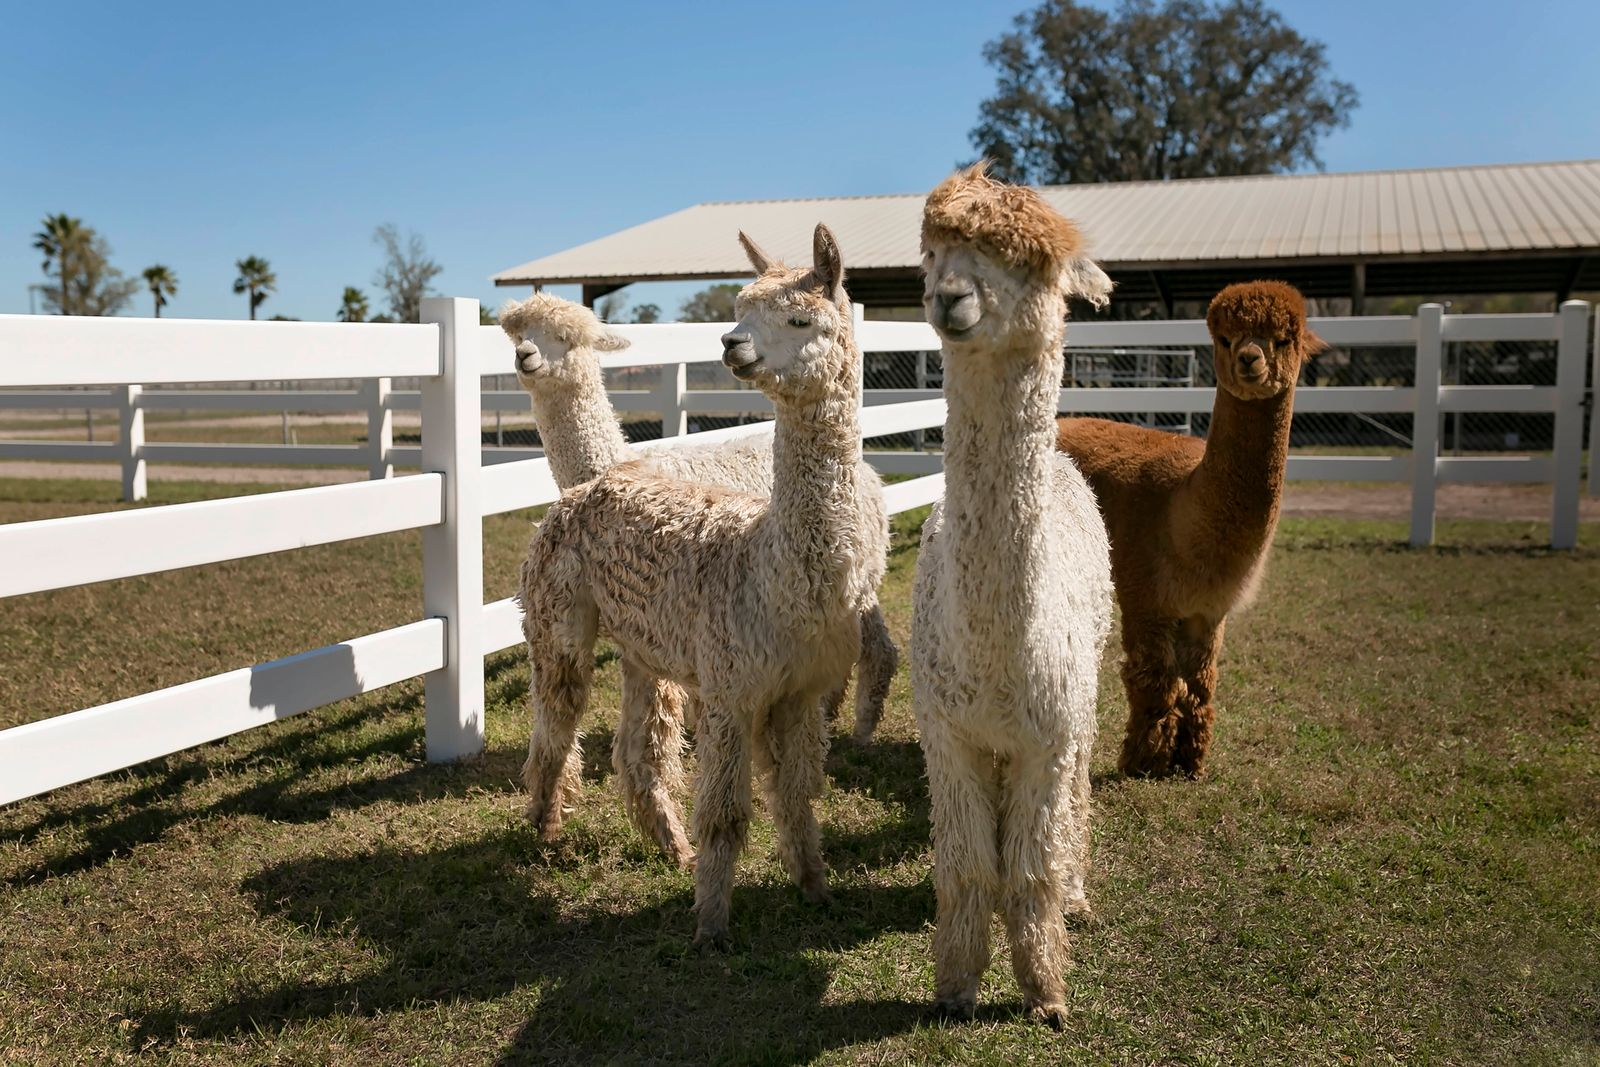 Four alpacas standing in white fenced in area on alpaca farm United States, Florida, Tampa PUBLICATIONxINxGERxSUIxAUTxON